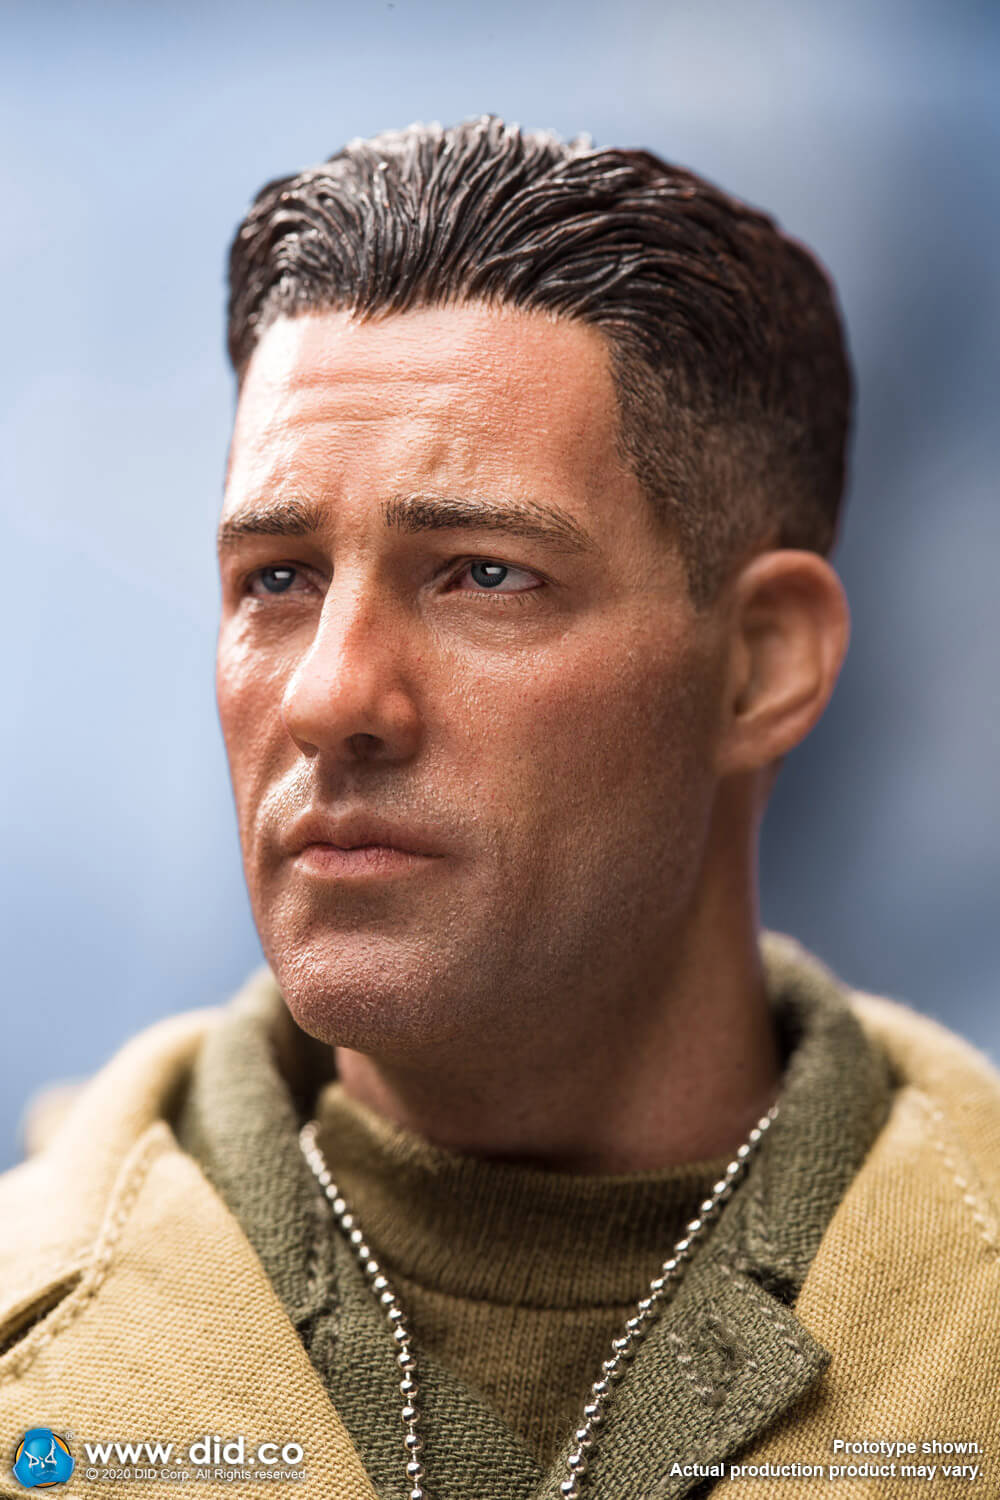 male - NEW PRODUCT: DiD: A80141 WWII US 2nd Ranger Battalion Private First Class Reiben 1/6 scale figure Us-2nd11